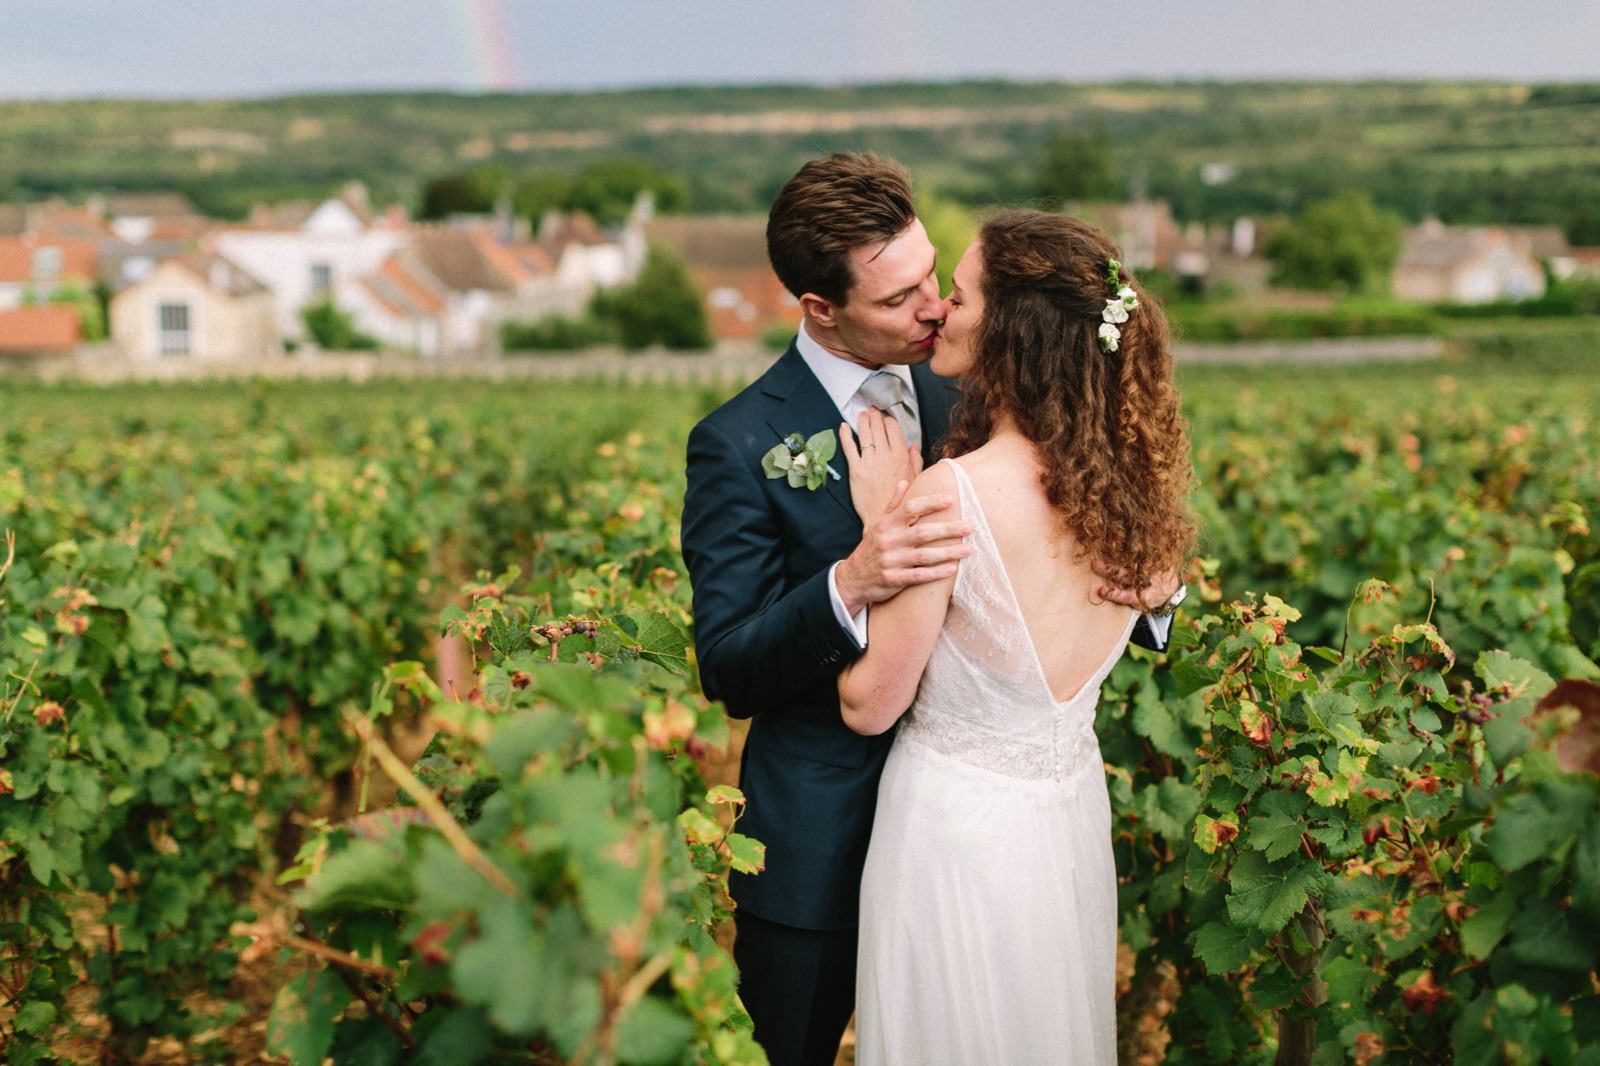 Bourgogne wine road wedding